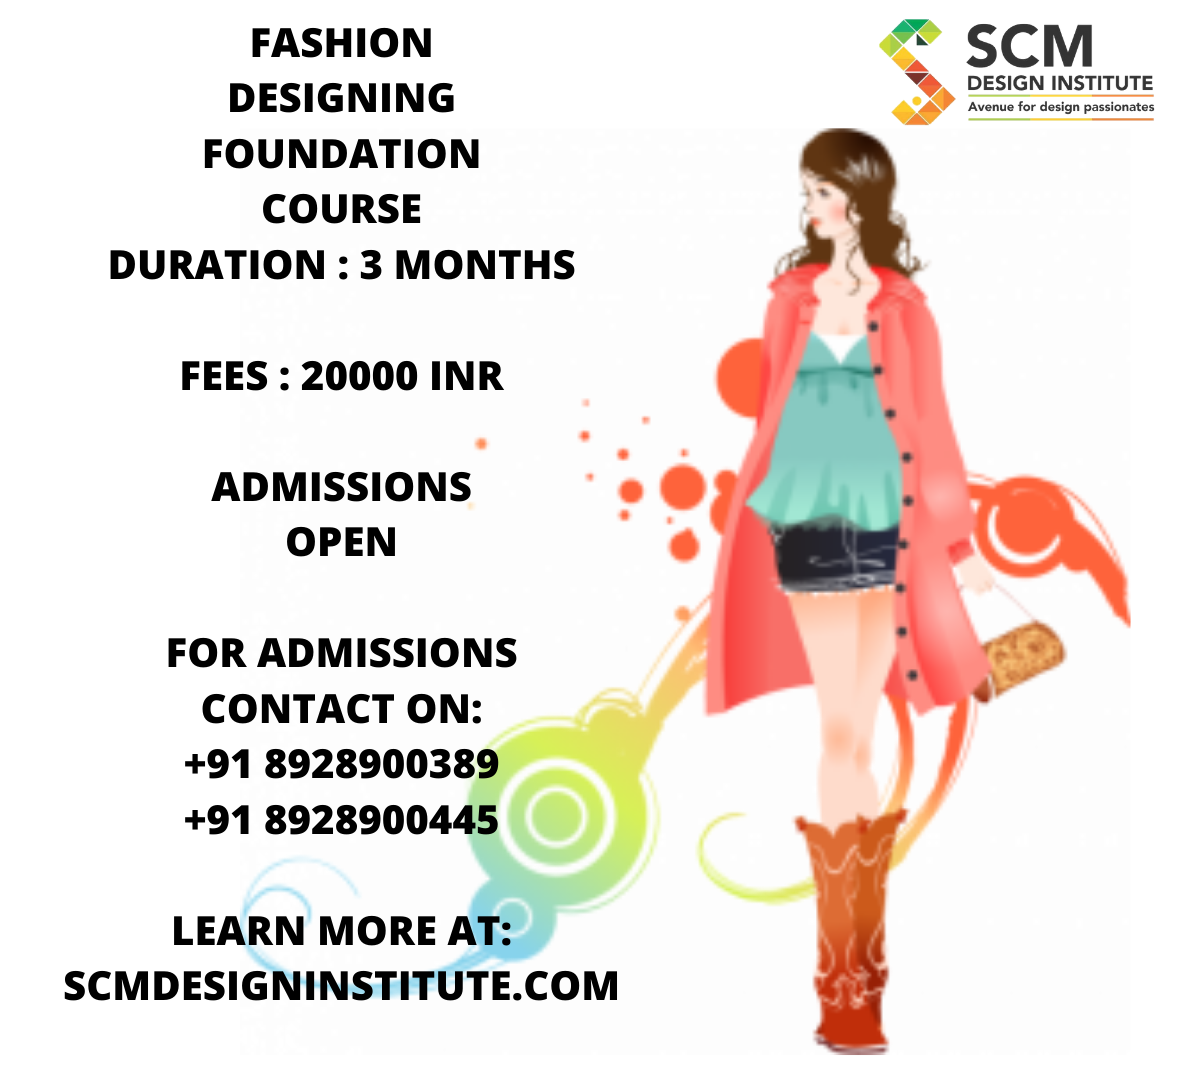 Fashion Designing Foundation Course Duration 3 Months Fees 20000 Inr Admissions Open For Admissions Contac In 2020 Insta Fashion Fashion Photography Fashion Design